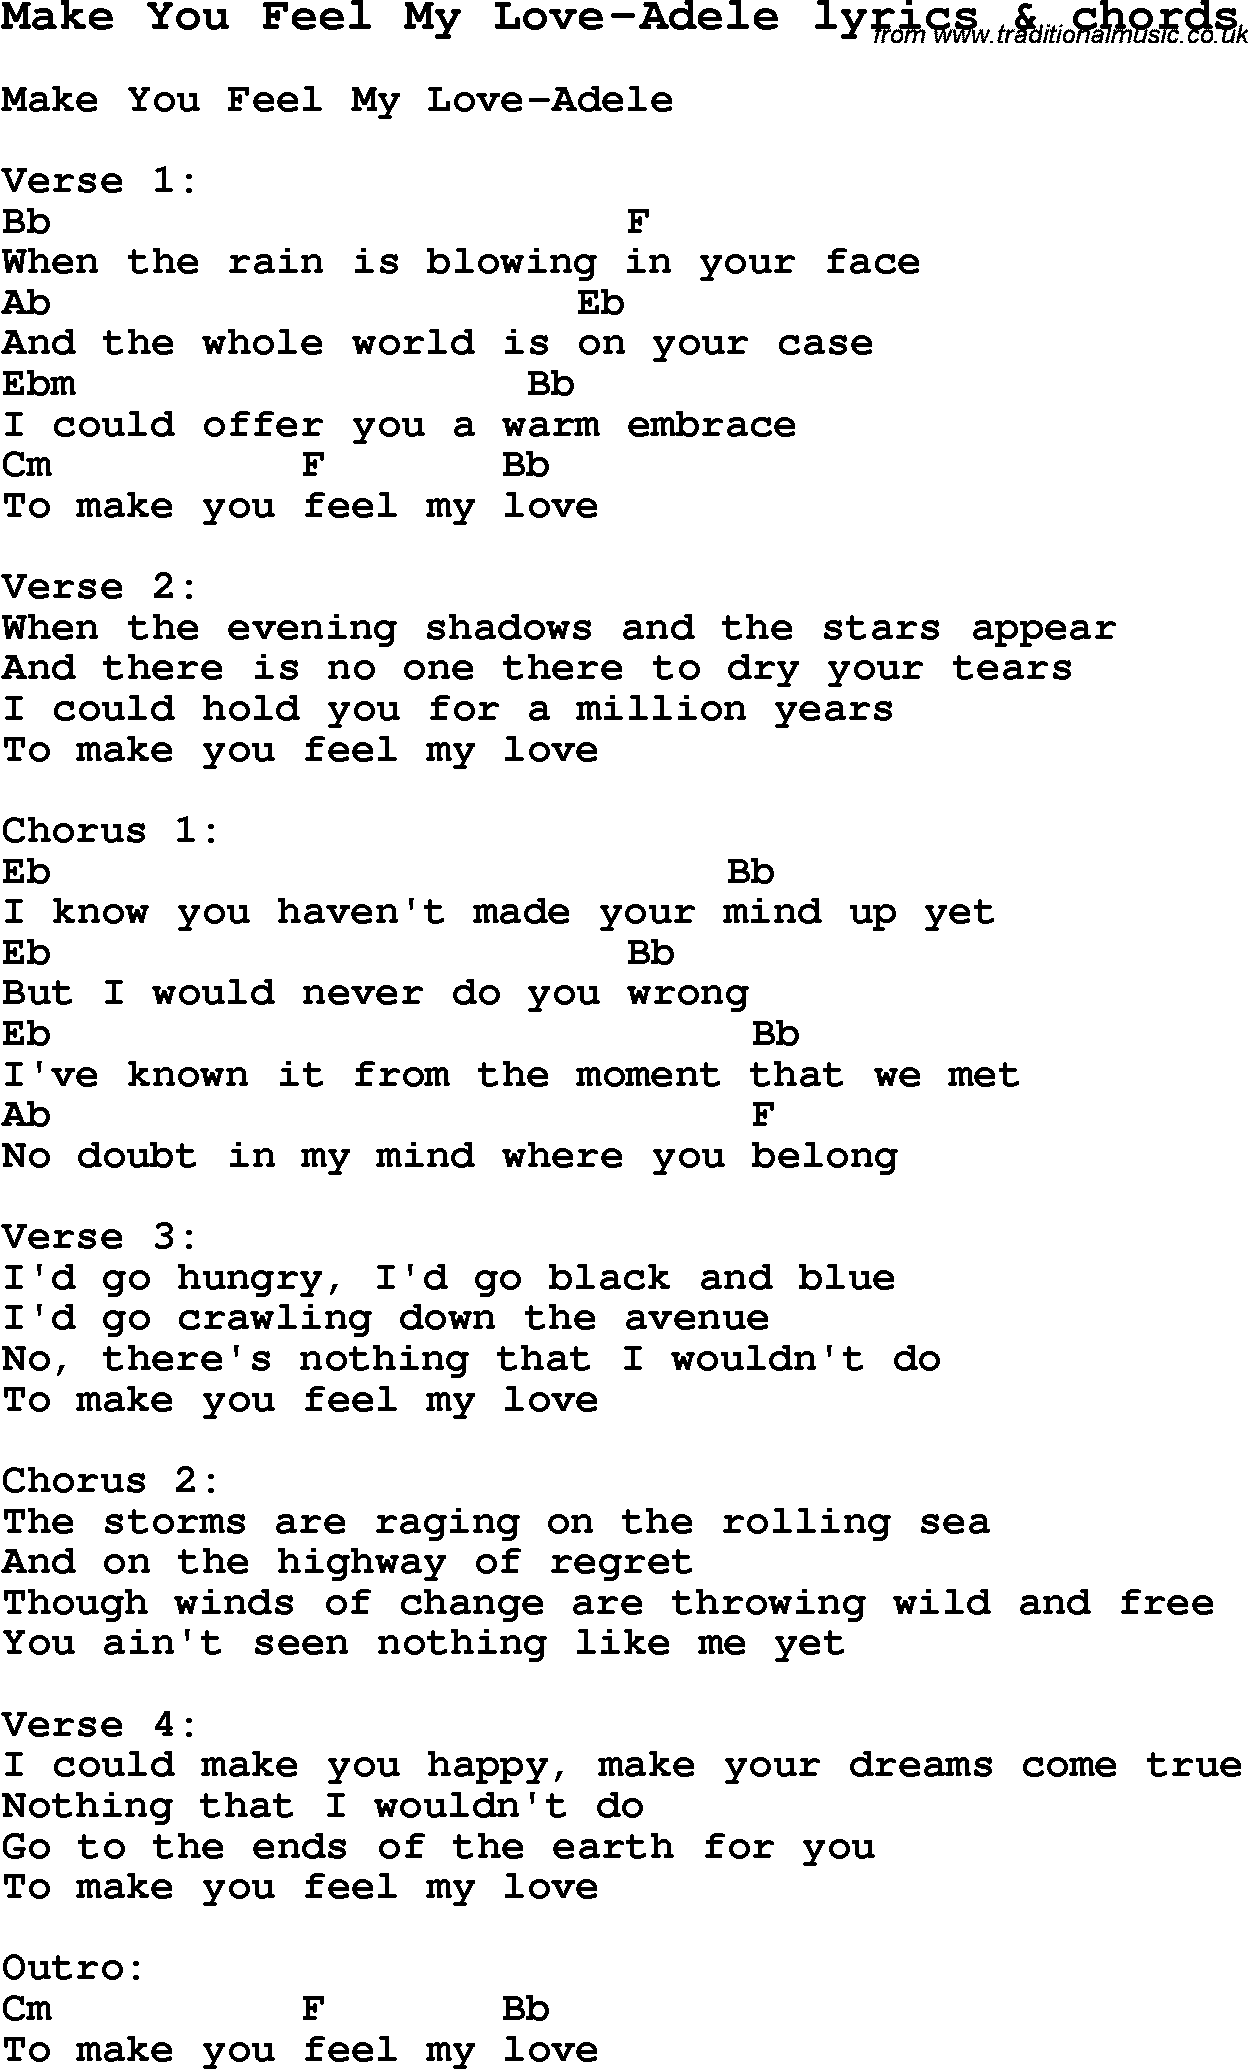 Love Song Lyrics For Make You Feel My Adele With Chords